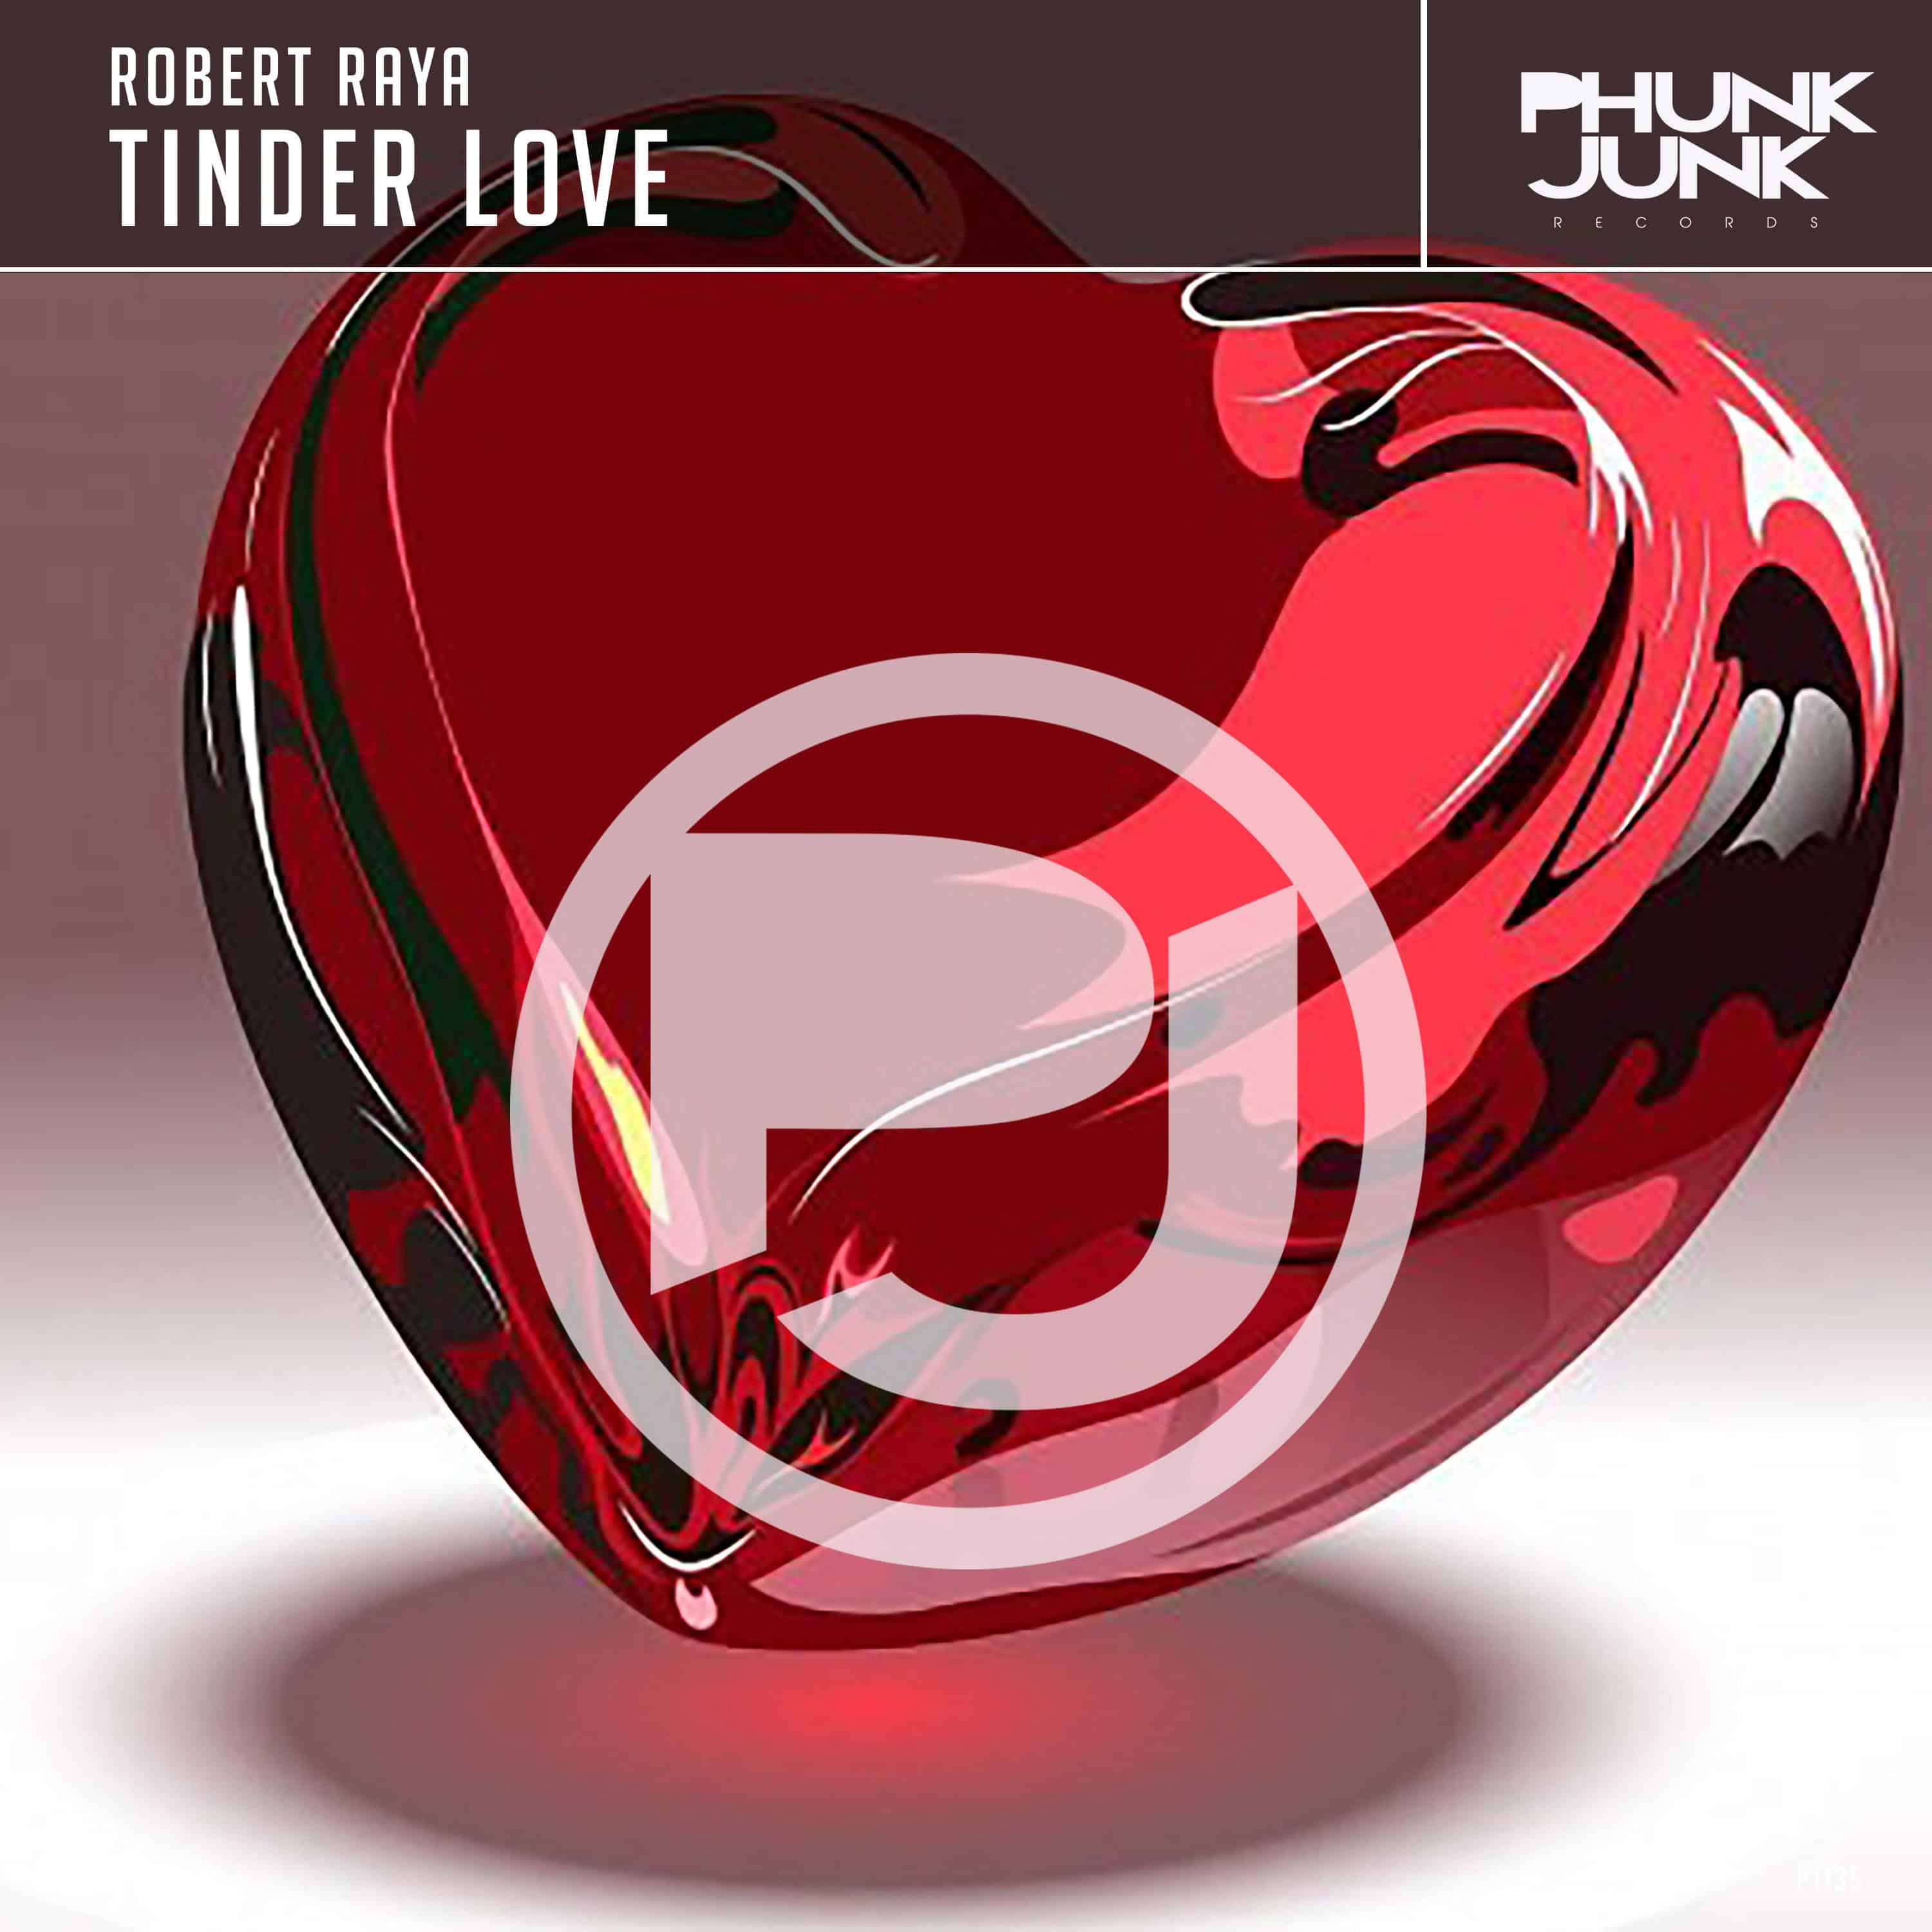 Robert Raya's first ever release 'Tinder Love'